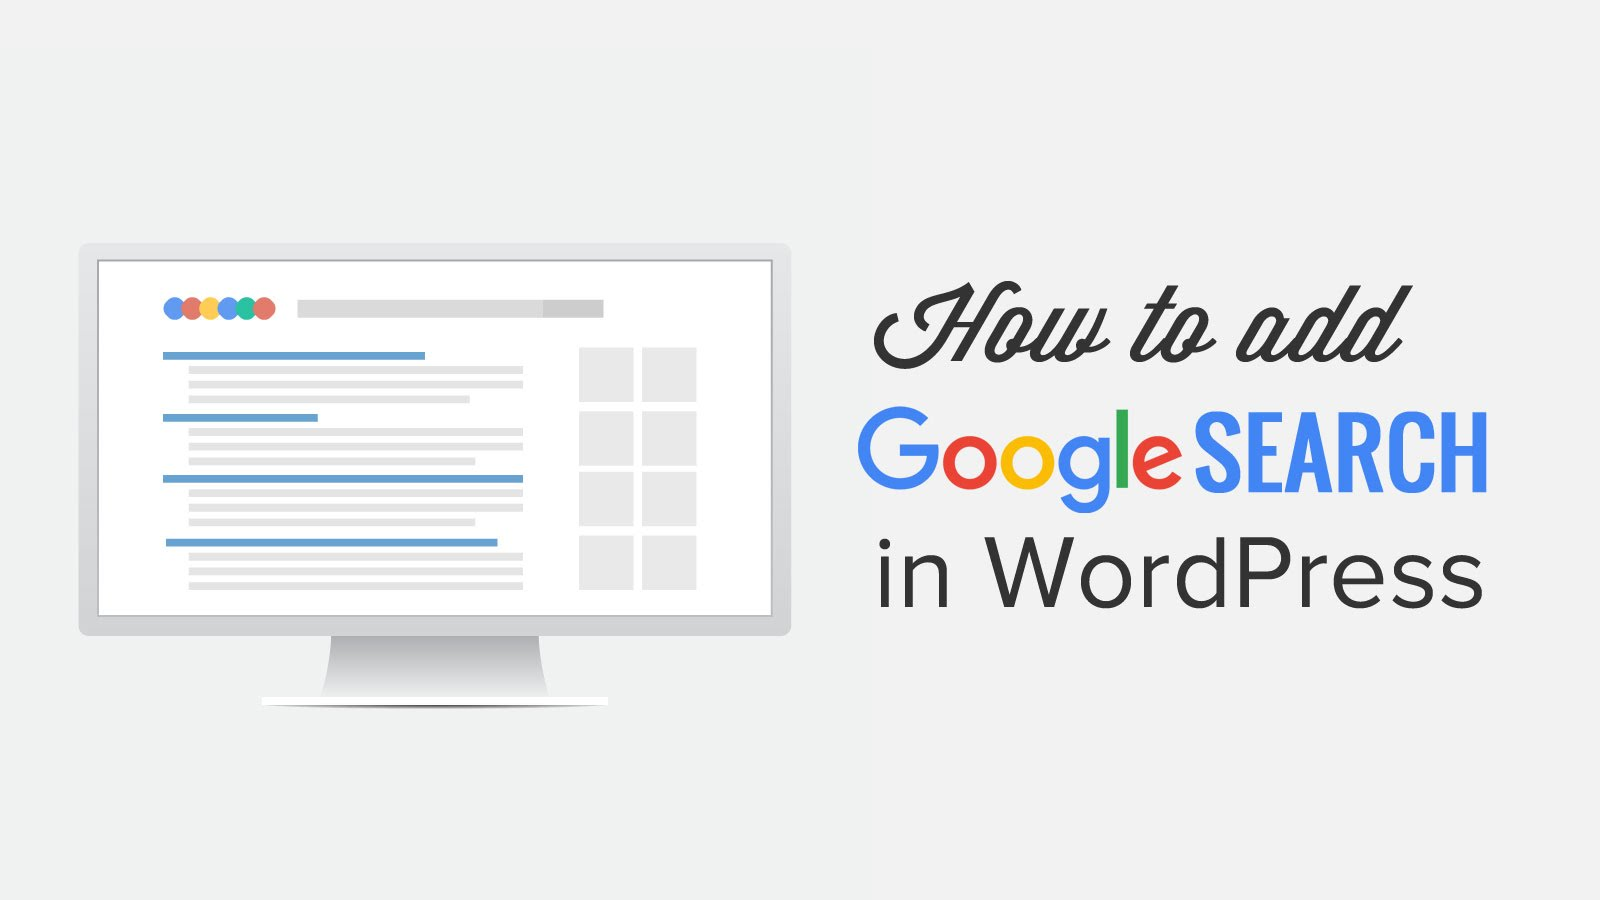 Add a Google Custom Search to Your WordPress Site